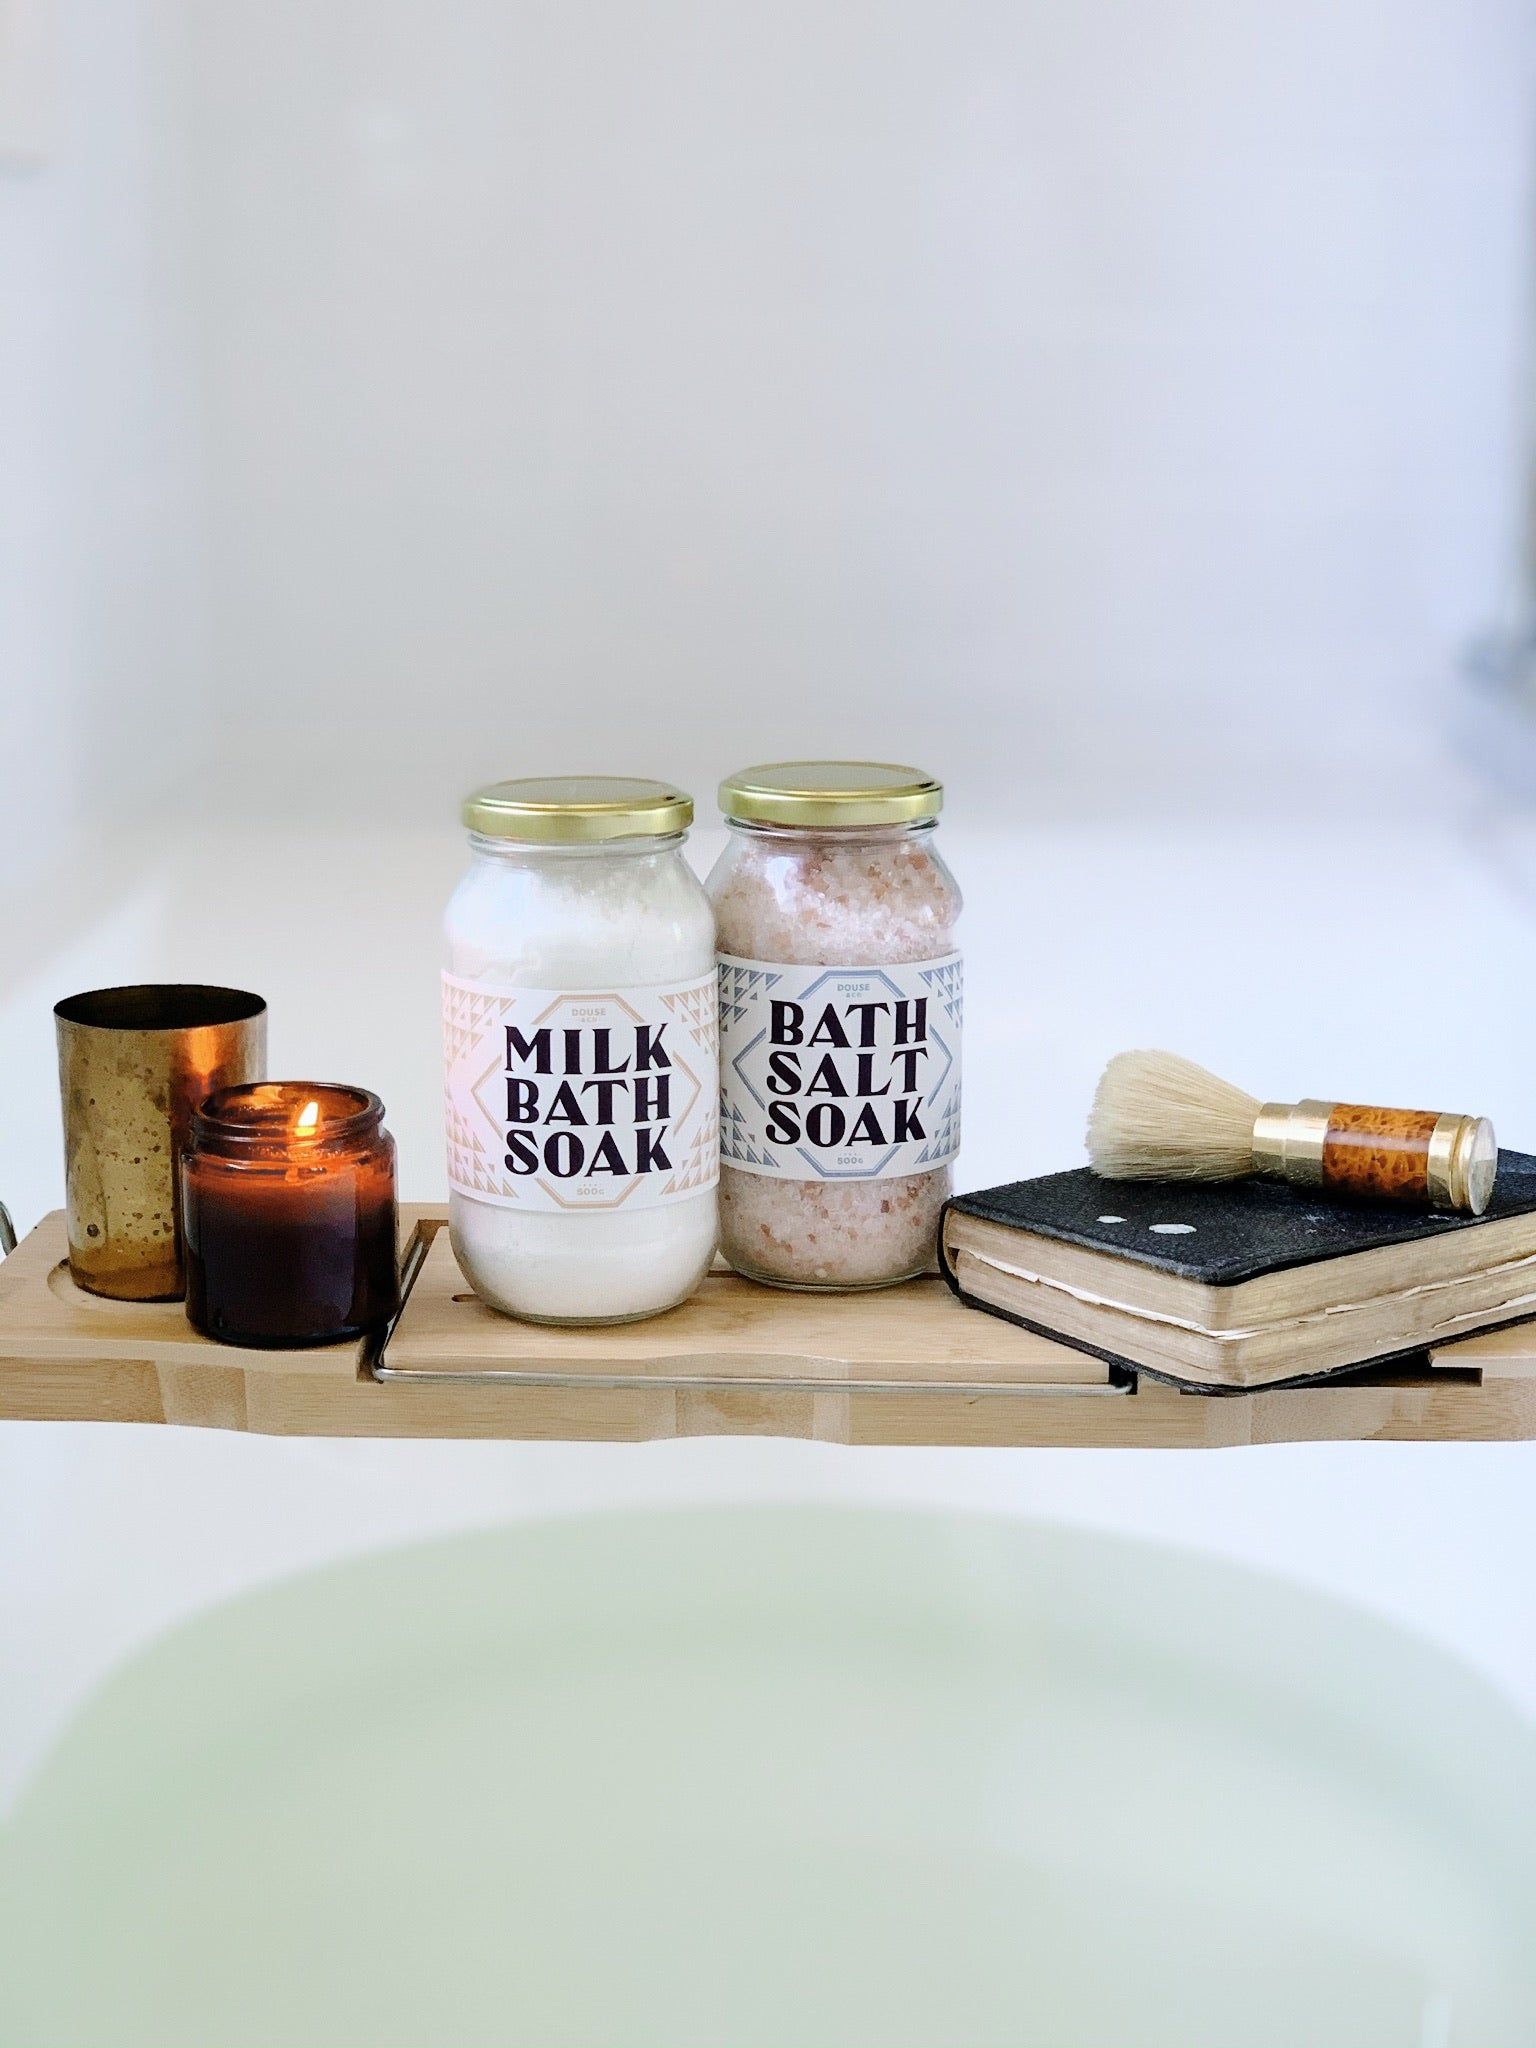 Muscle Bath Salt Soak - Repairs, restores & relaxes- 500g